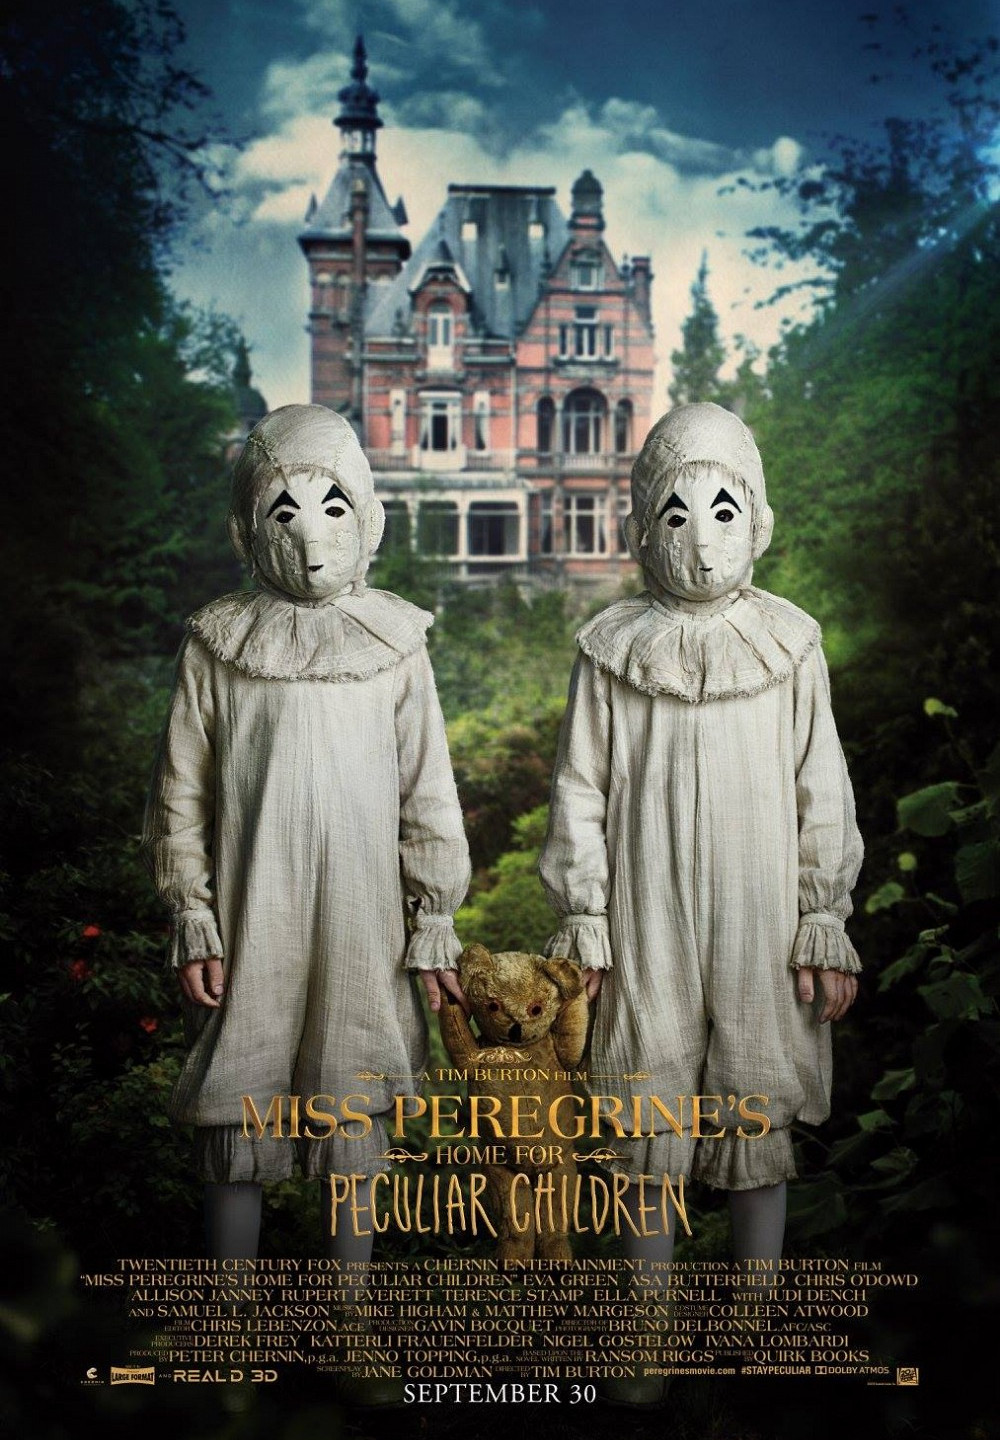 Miss-Peregrines-Home-for-Peculiar-Children-Poster-4